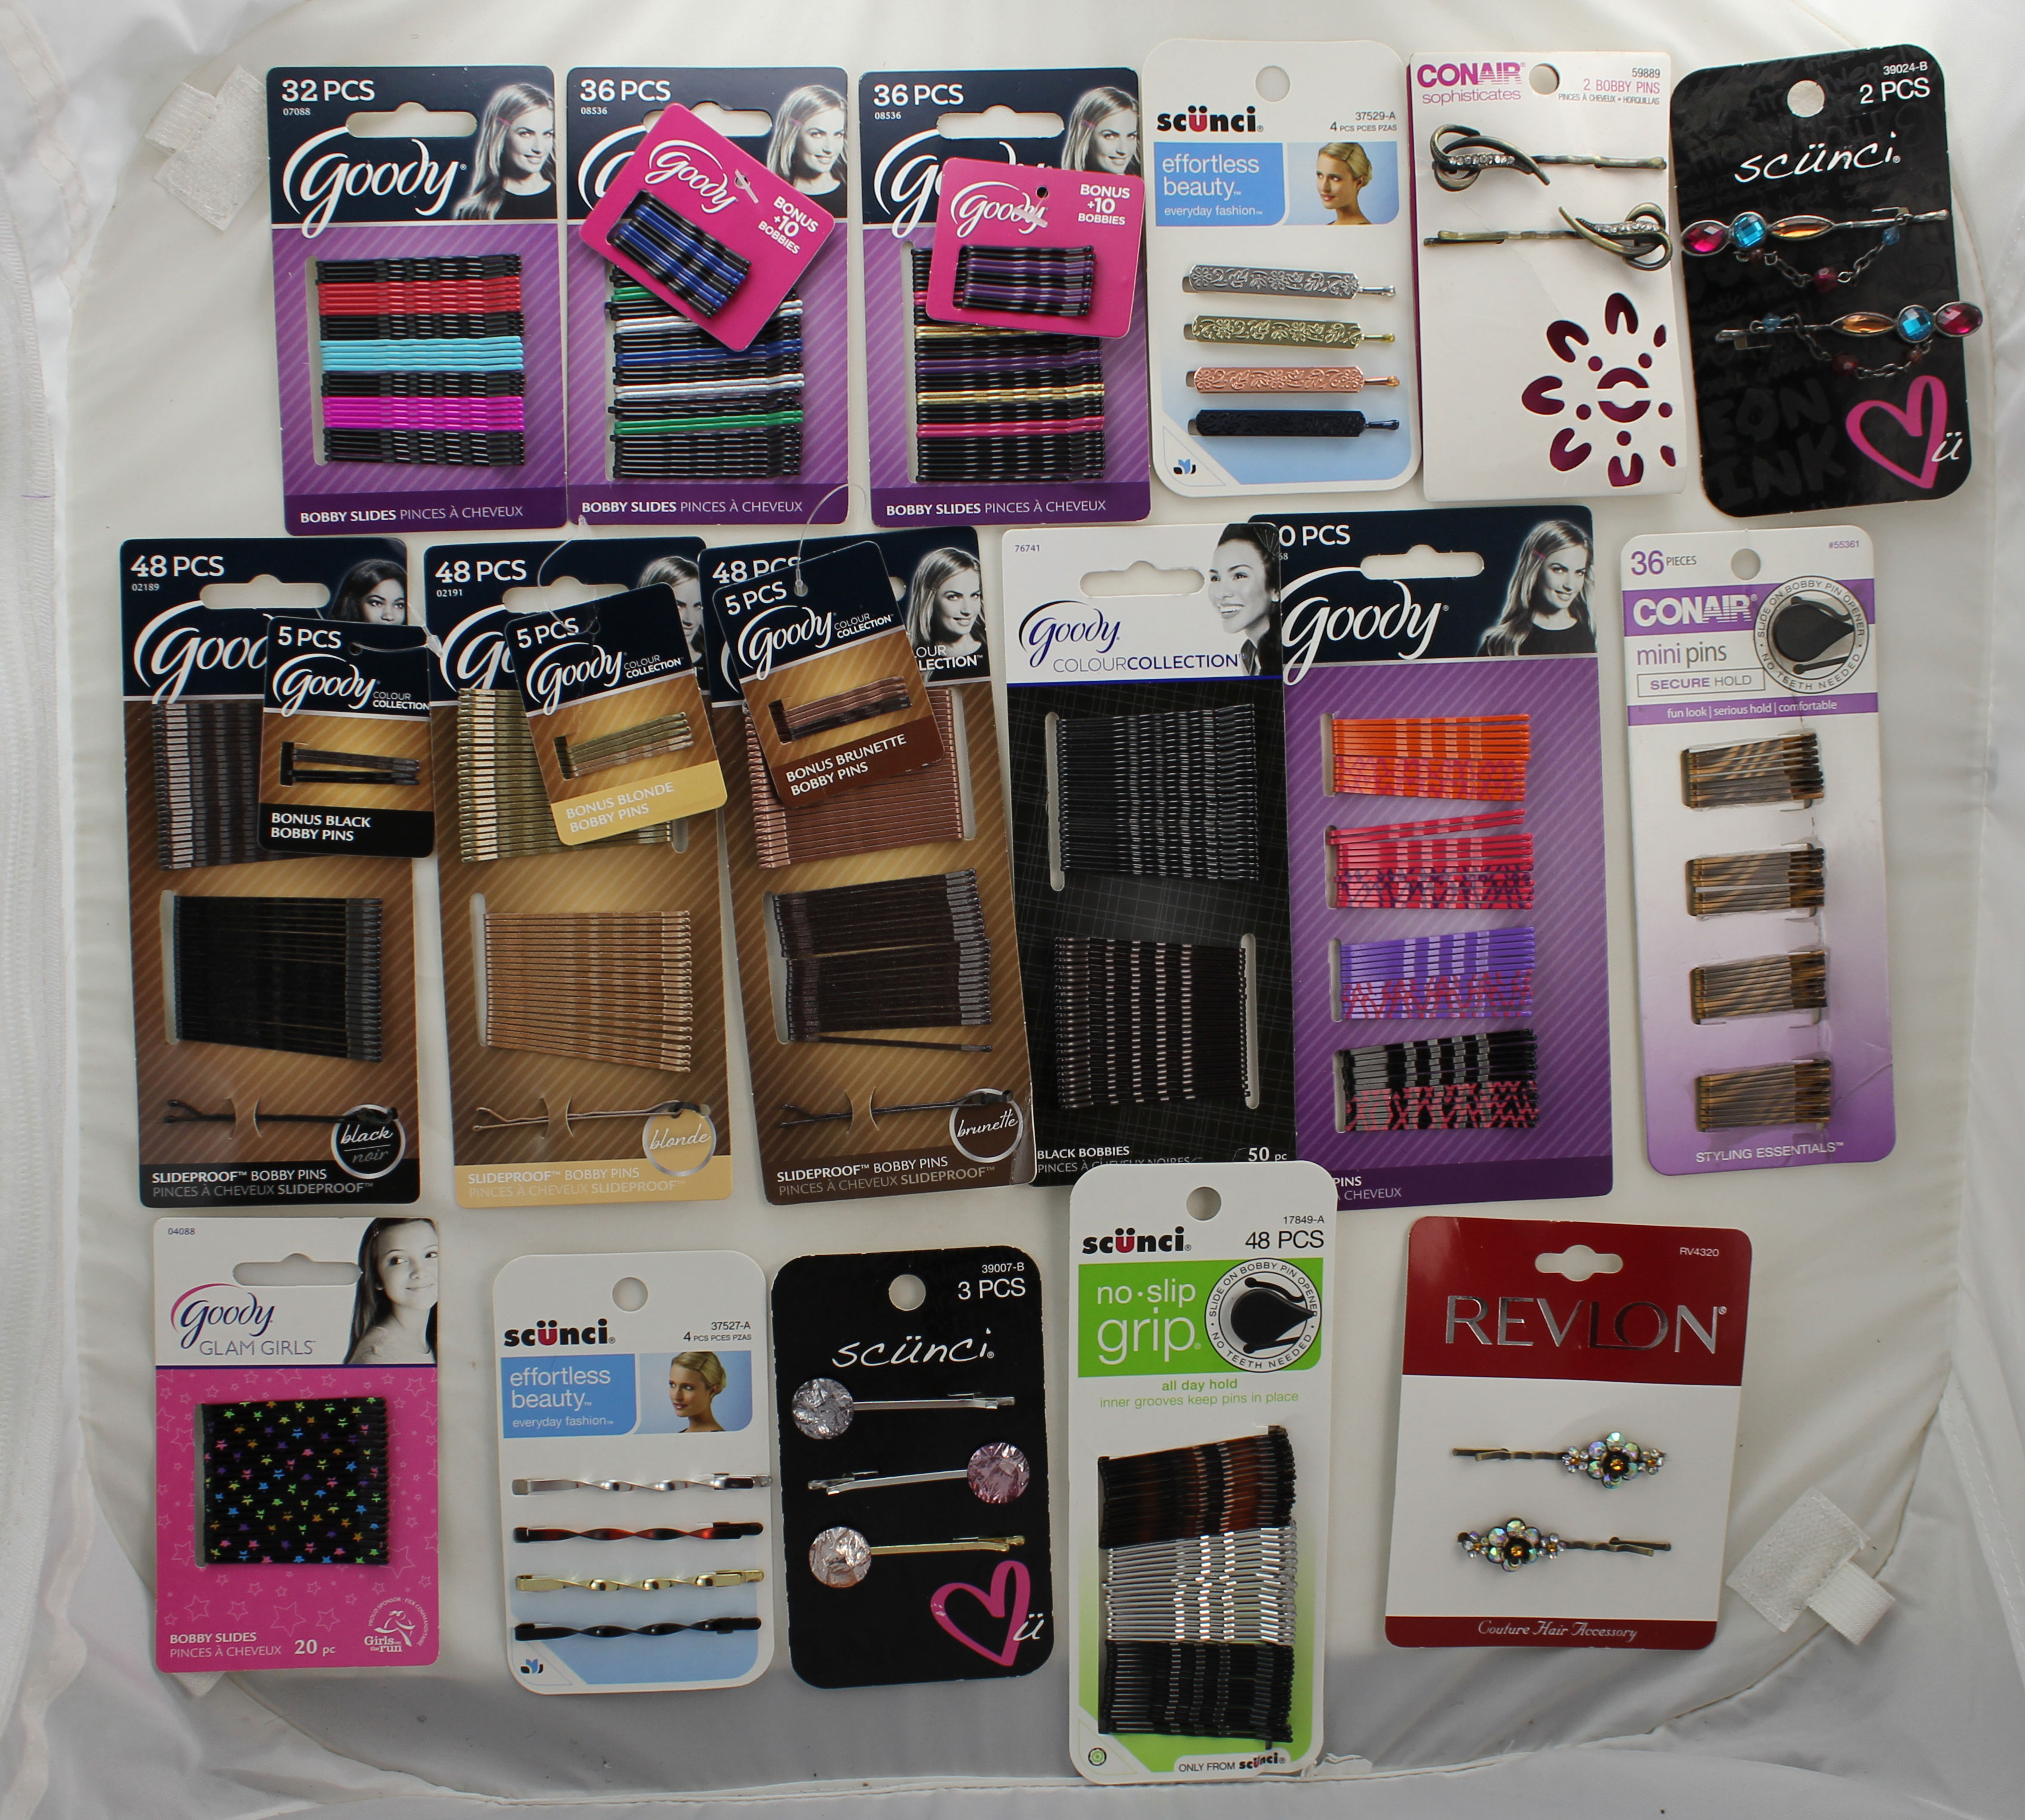 Bobby Pin Variables - GOODY, REVLON, SCUNCI, CONAIR - 12 Count (THG)